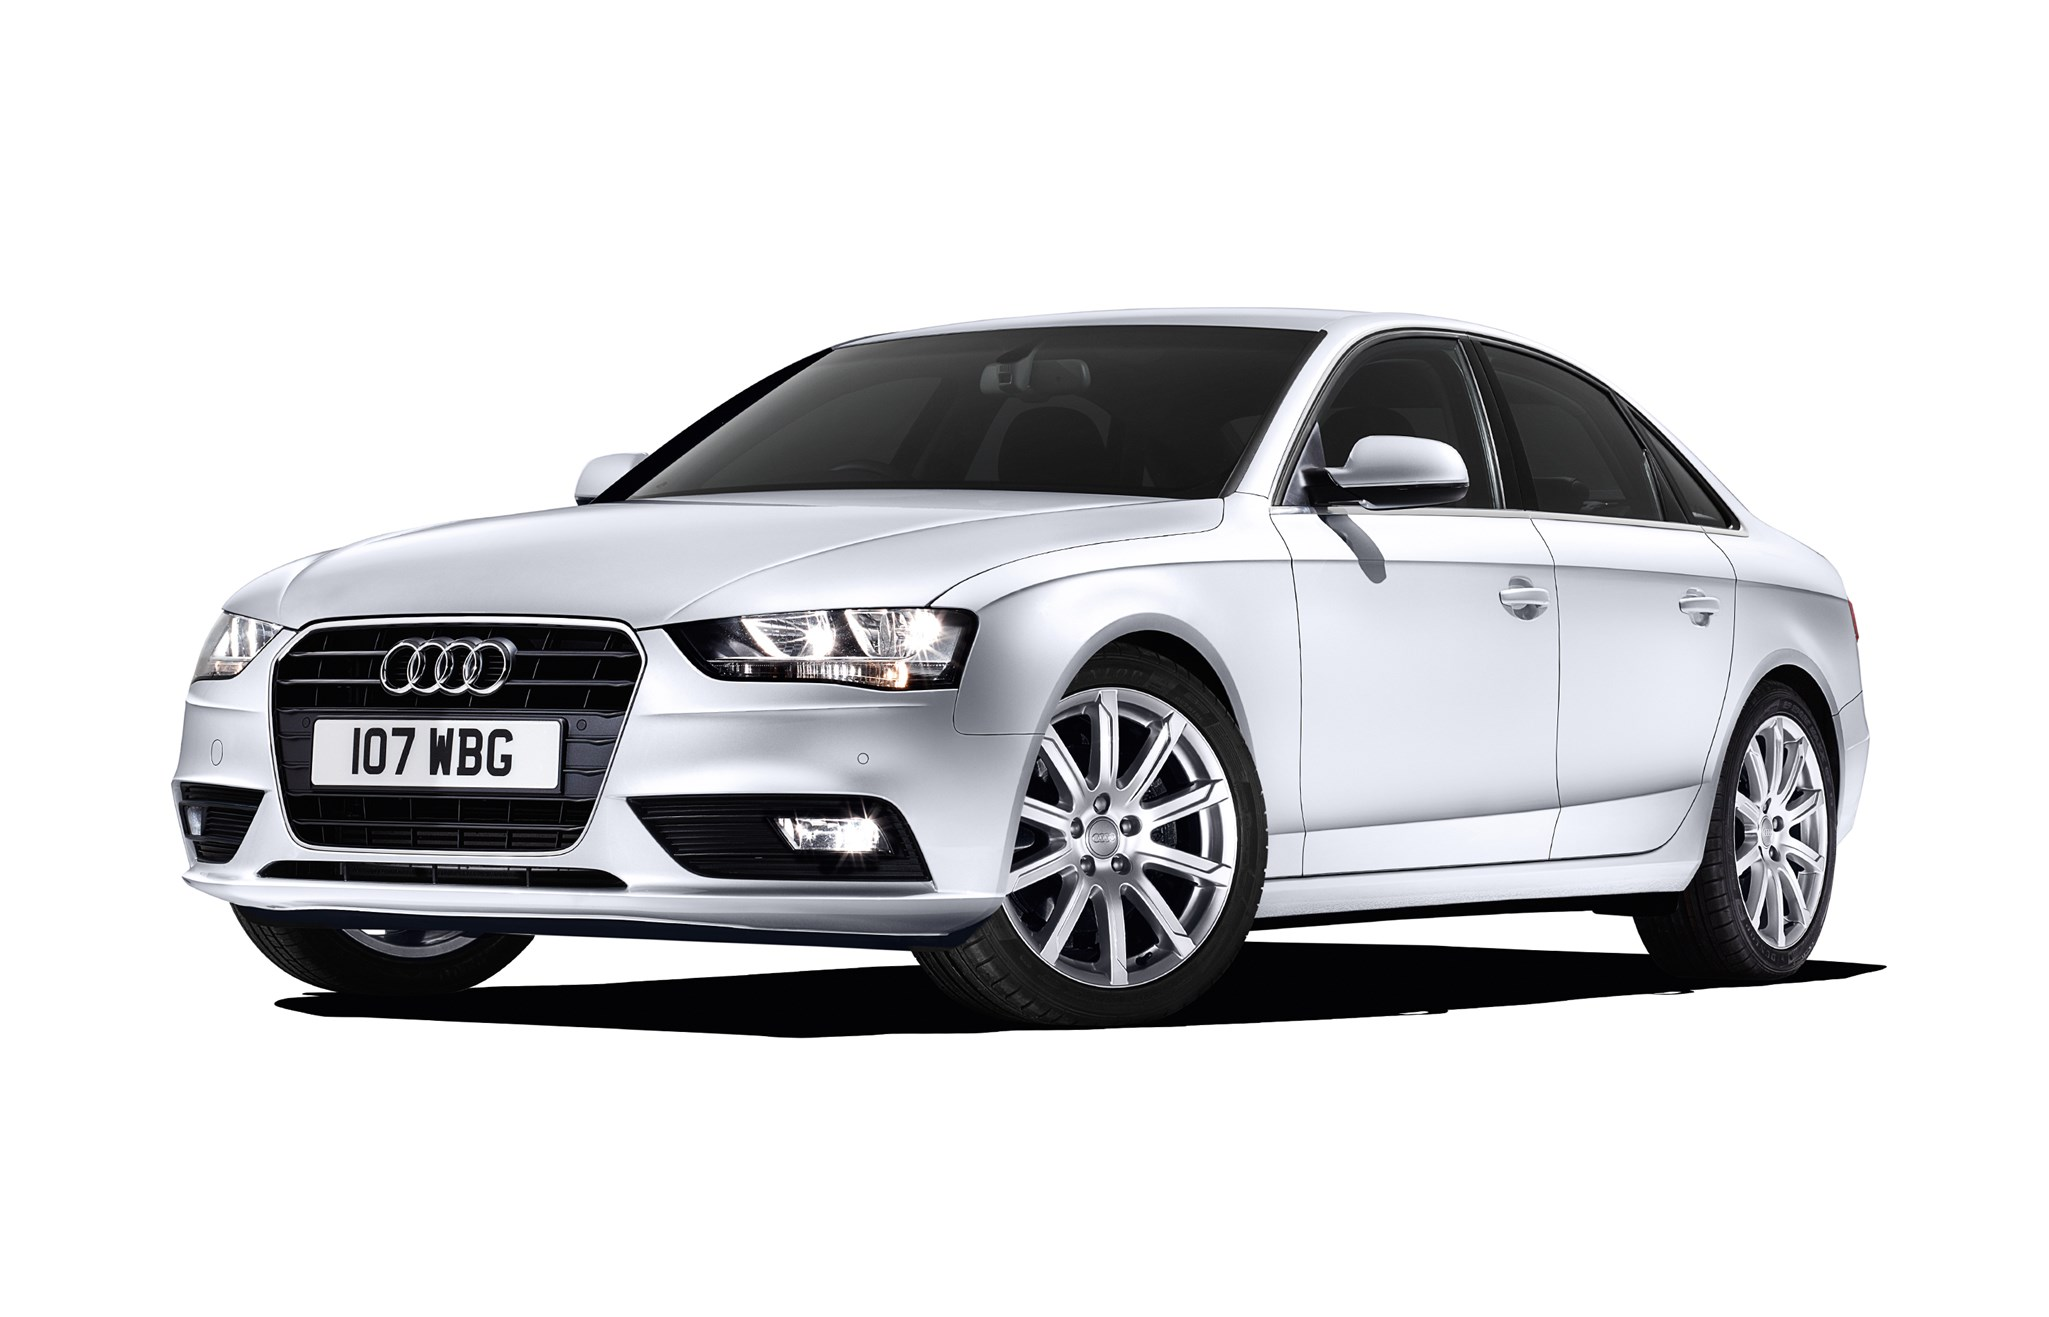 Audi rs3 saloon lease deals 11